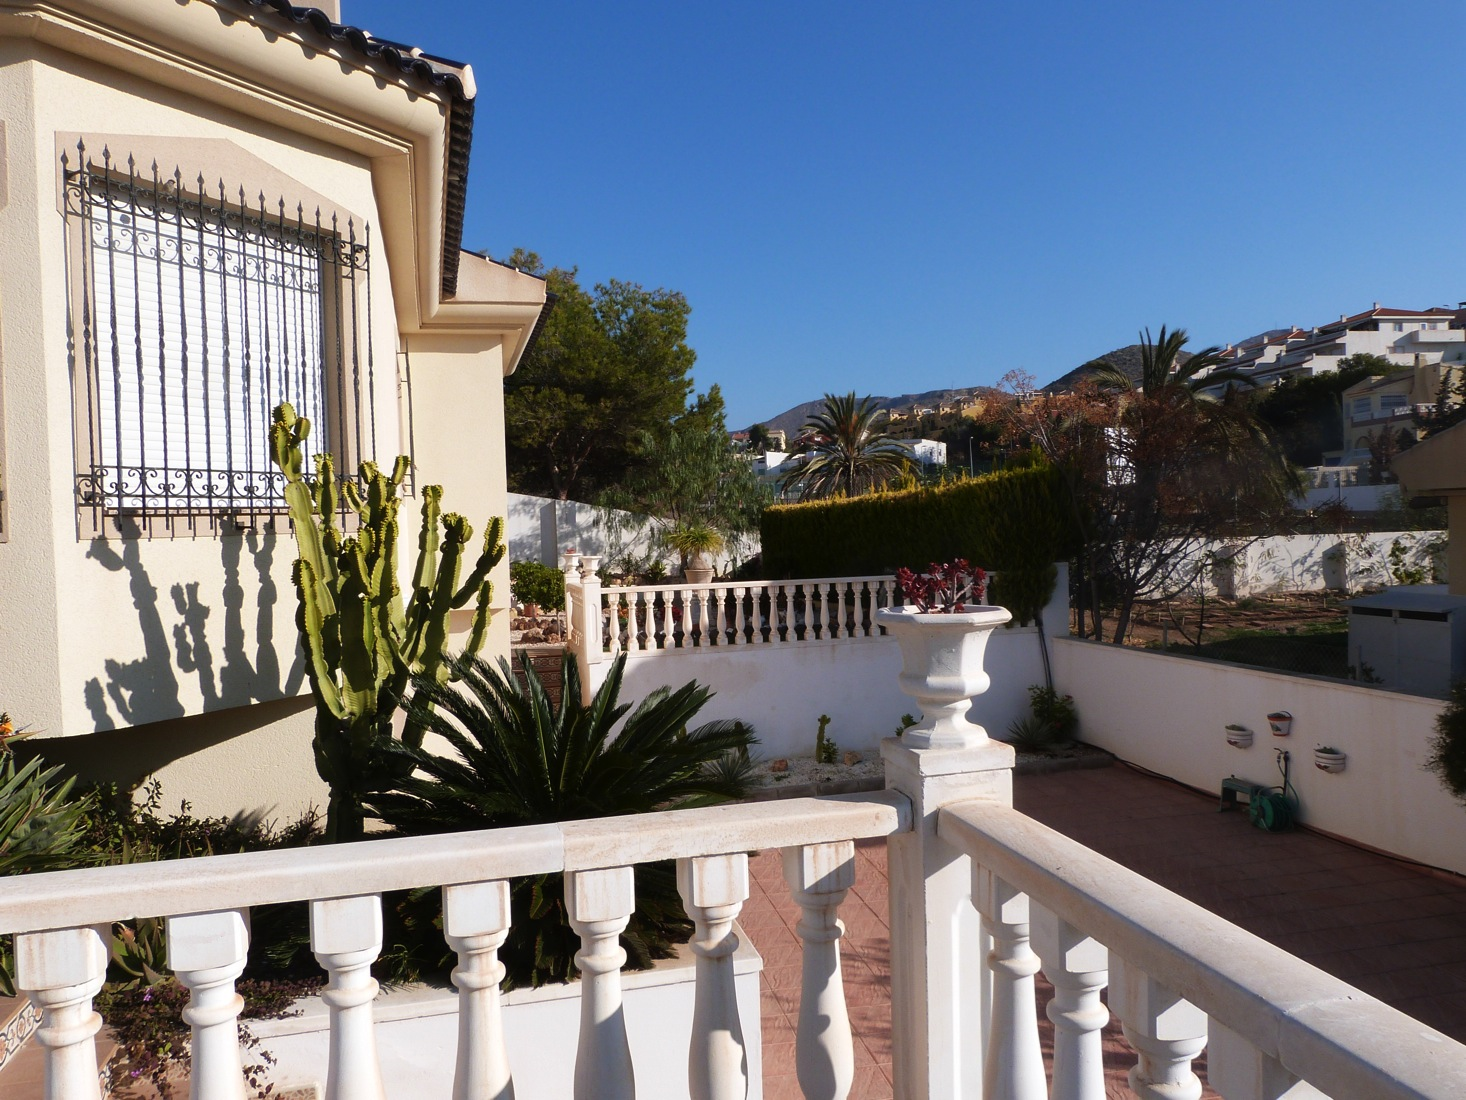 A Luxury 4 Bed, 4 Bath Villa Located in an exclusive area.